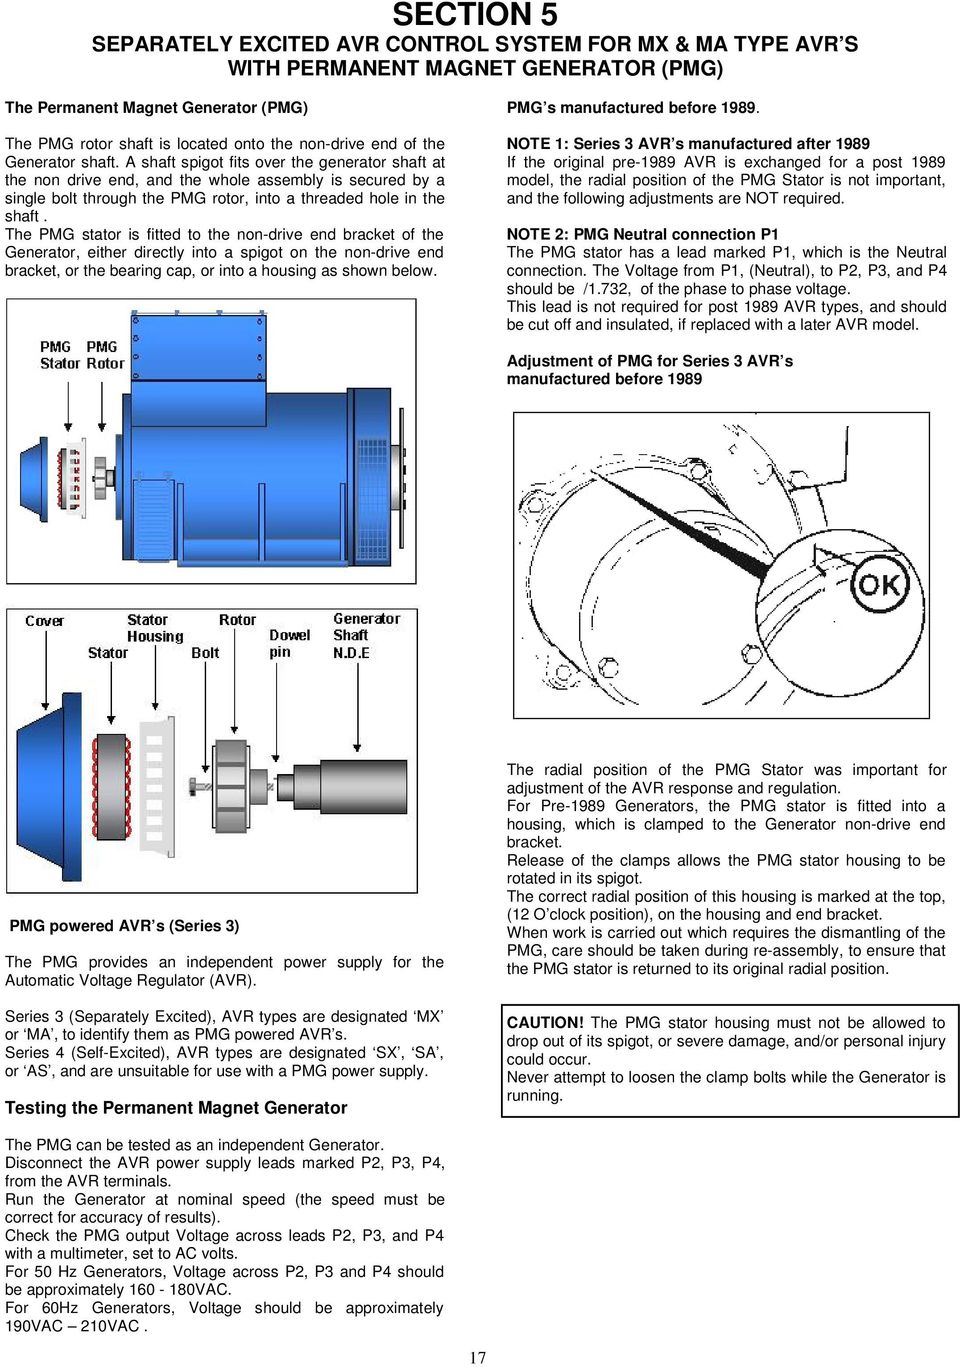 Fault Finding Manual For Stamford Ac Generators Pdf Air Conditioning C60 Overhead System Wiring Diagram G Models The Pmg Stator Is Fitted To Non Drive End Bracket Of Generator